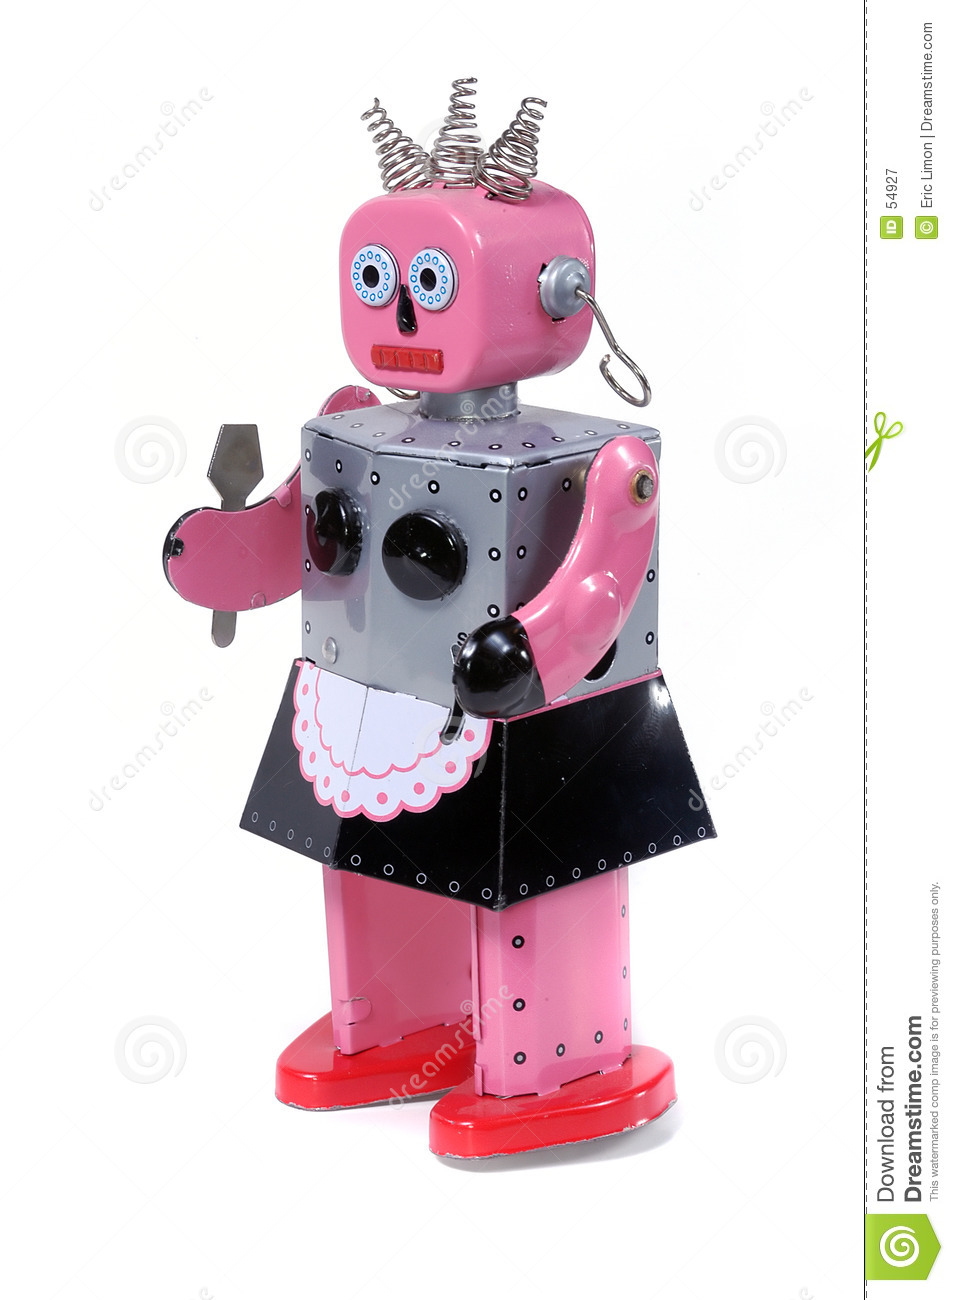 Vintage Robot Toy Stock Image. Image Of Clean